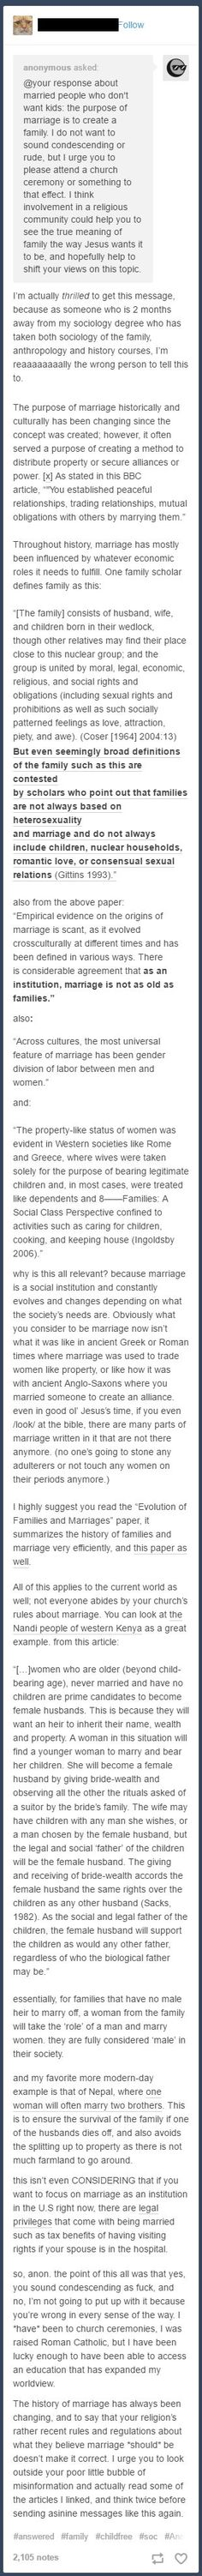 Sociological/Historical perspective of marriages and family.